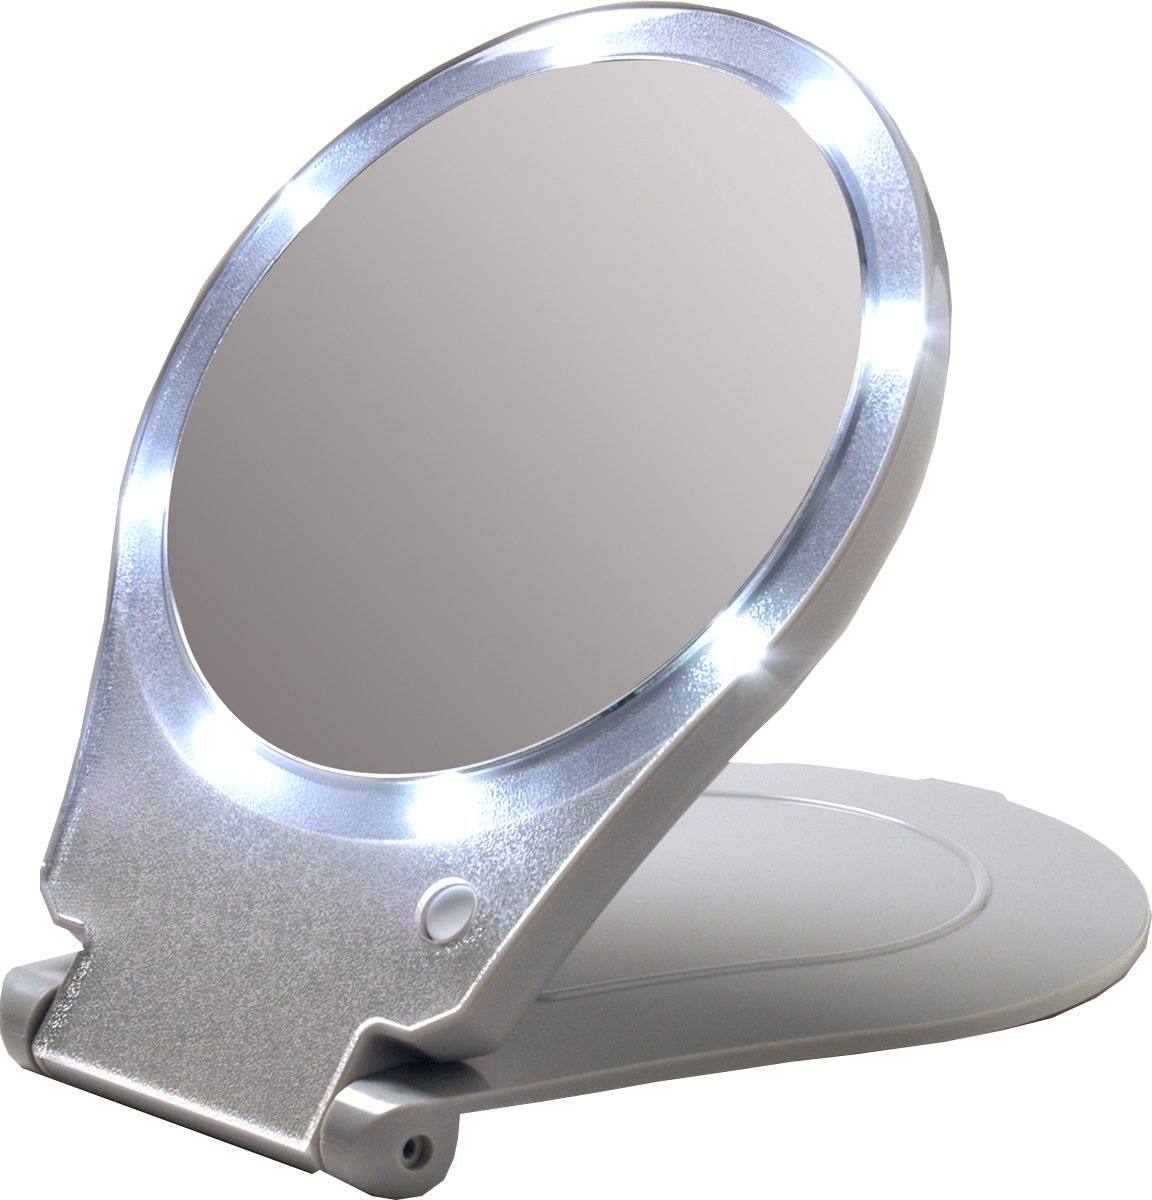 Floxite LED Lighted Makeup Mirrors